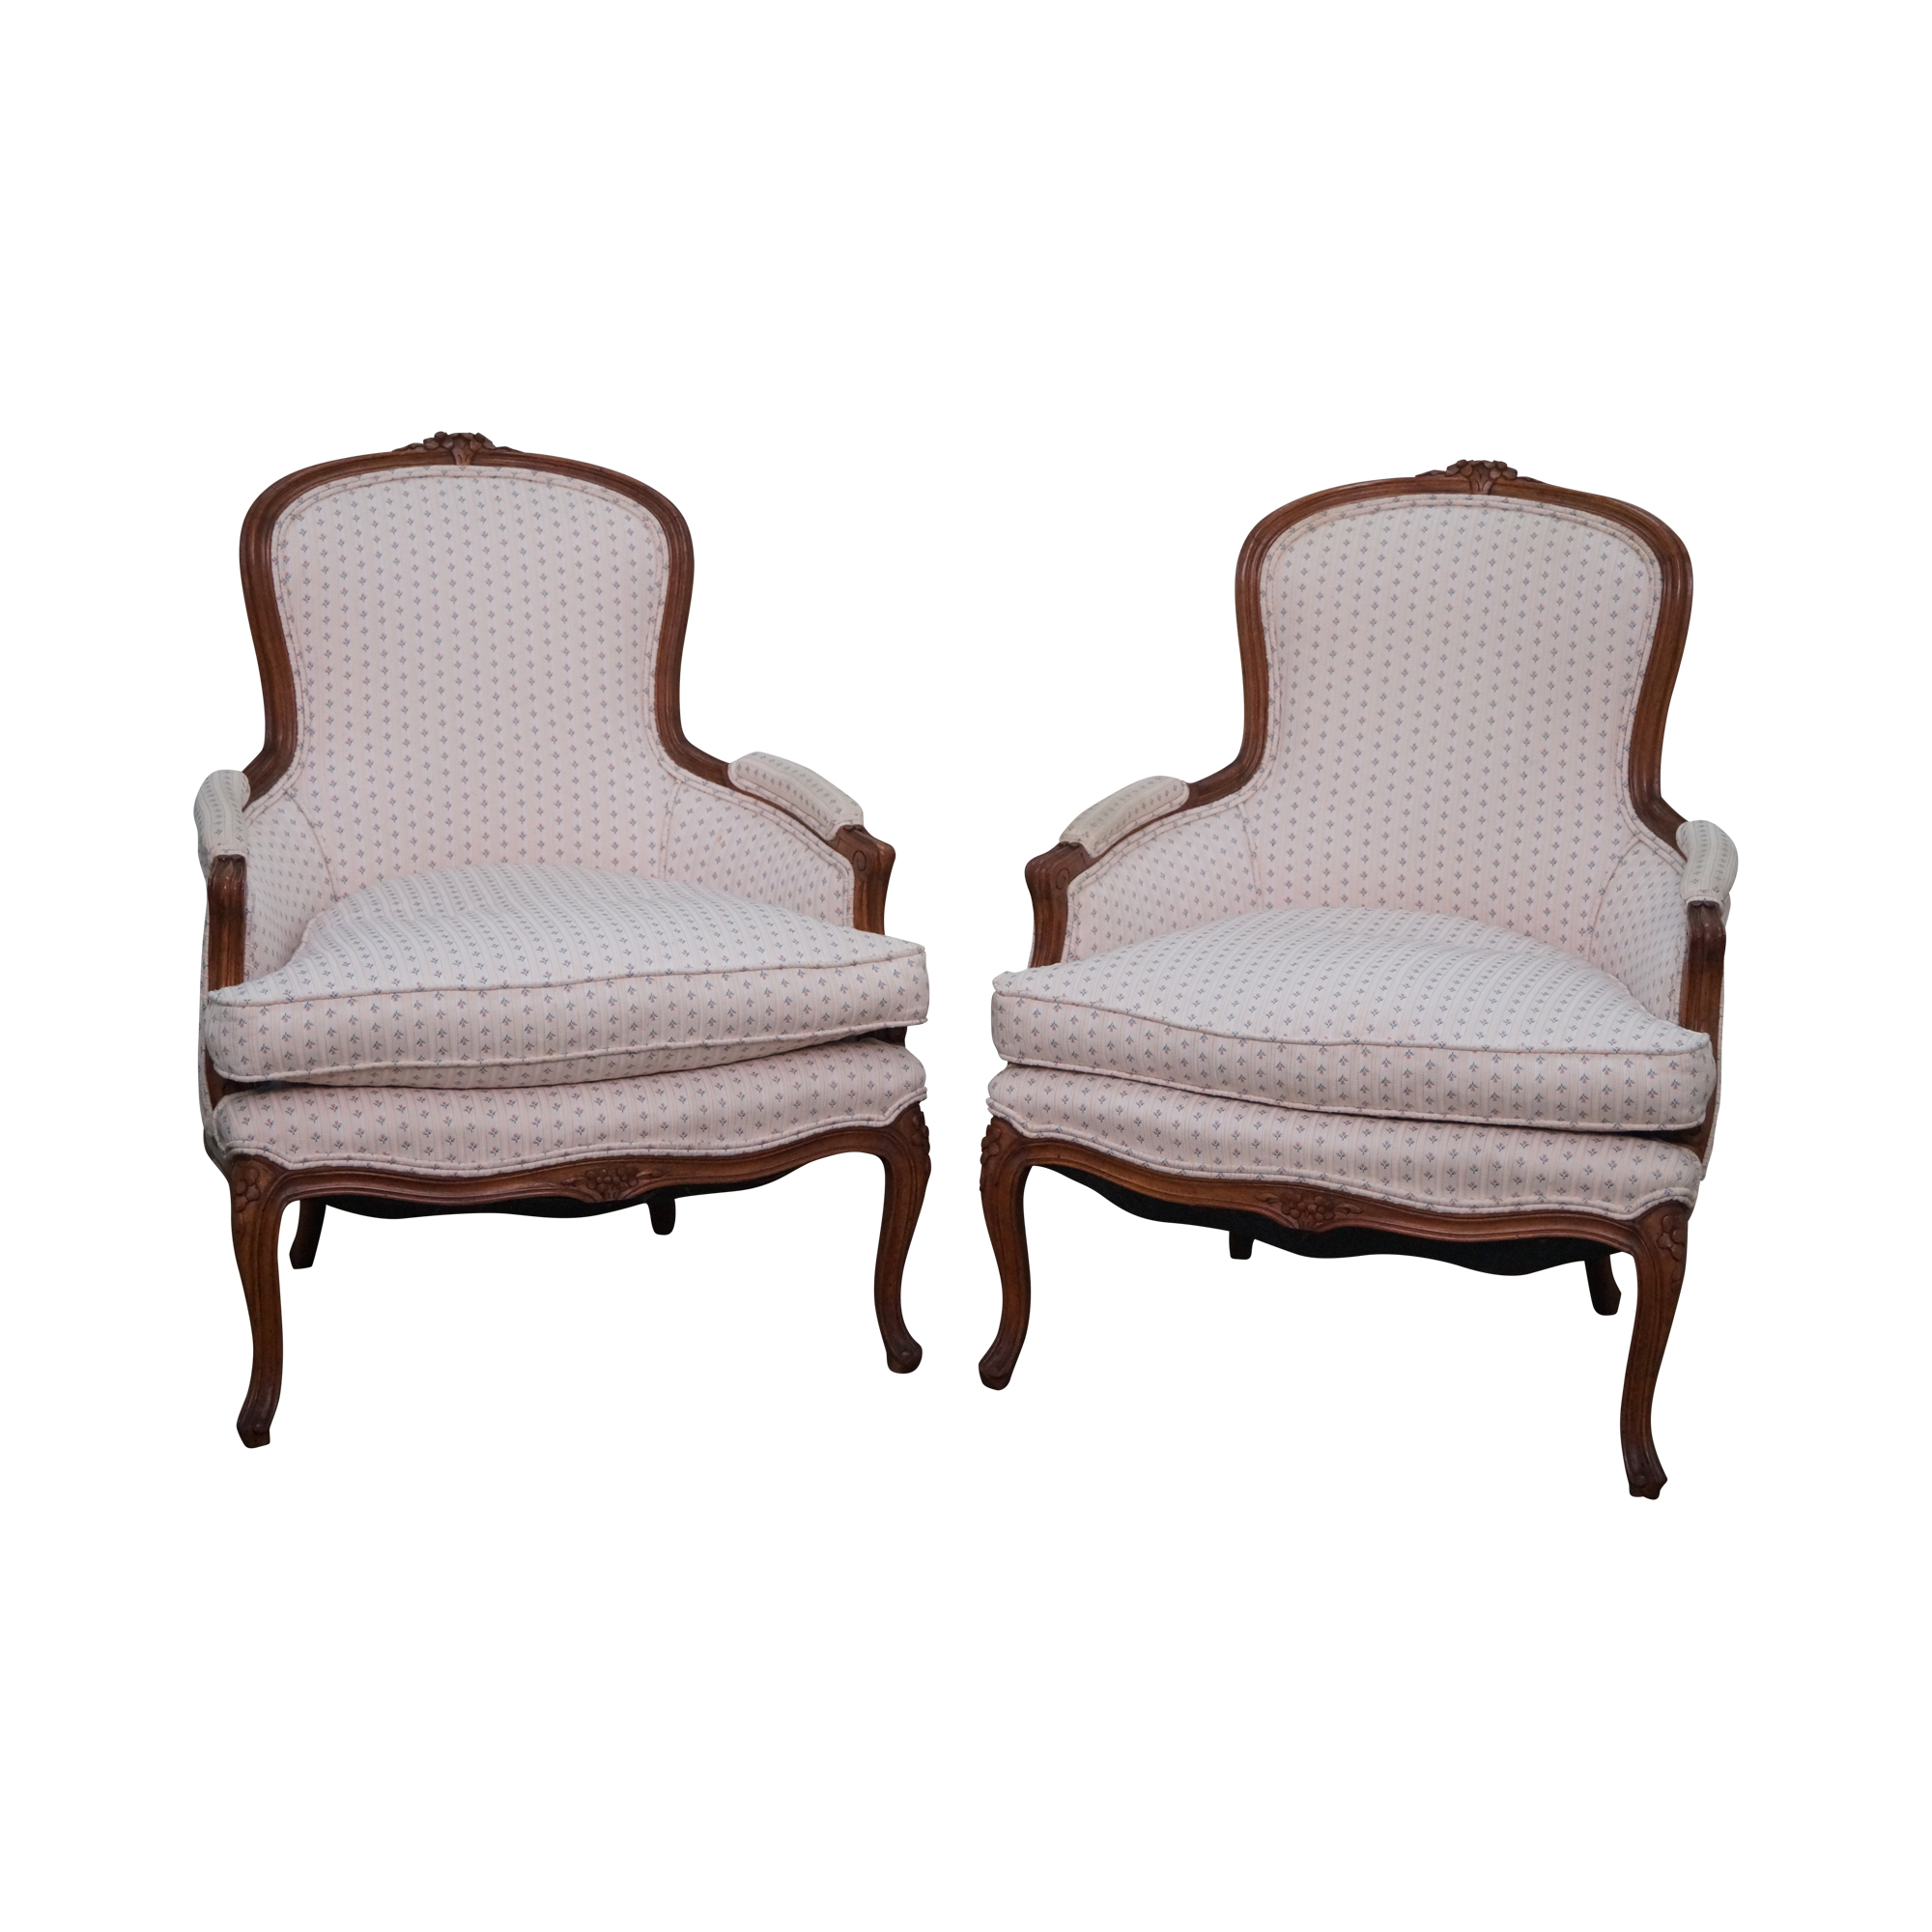 French louis xv style bergere chairs pair chairish for Table bergere